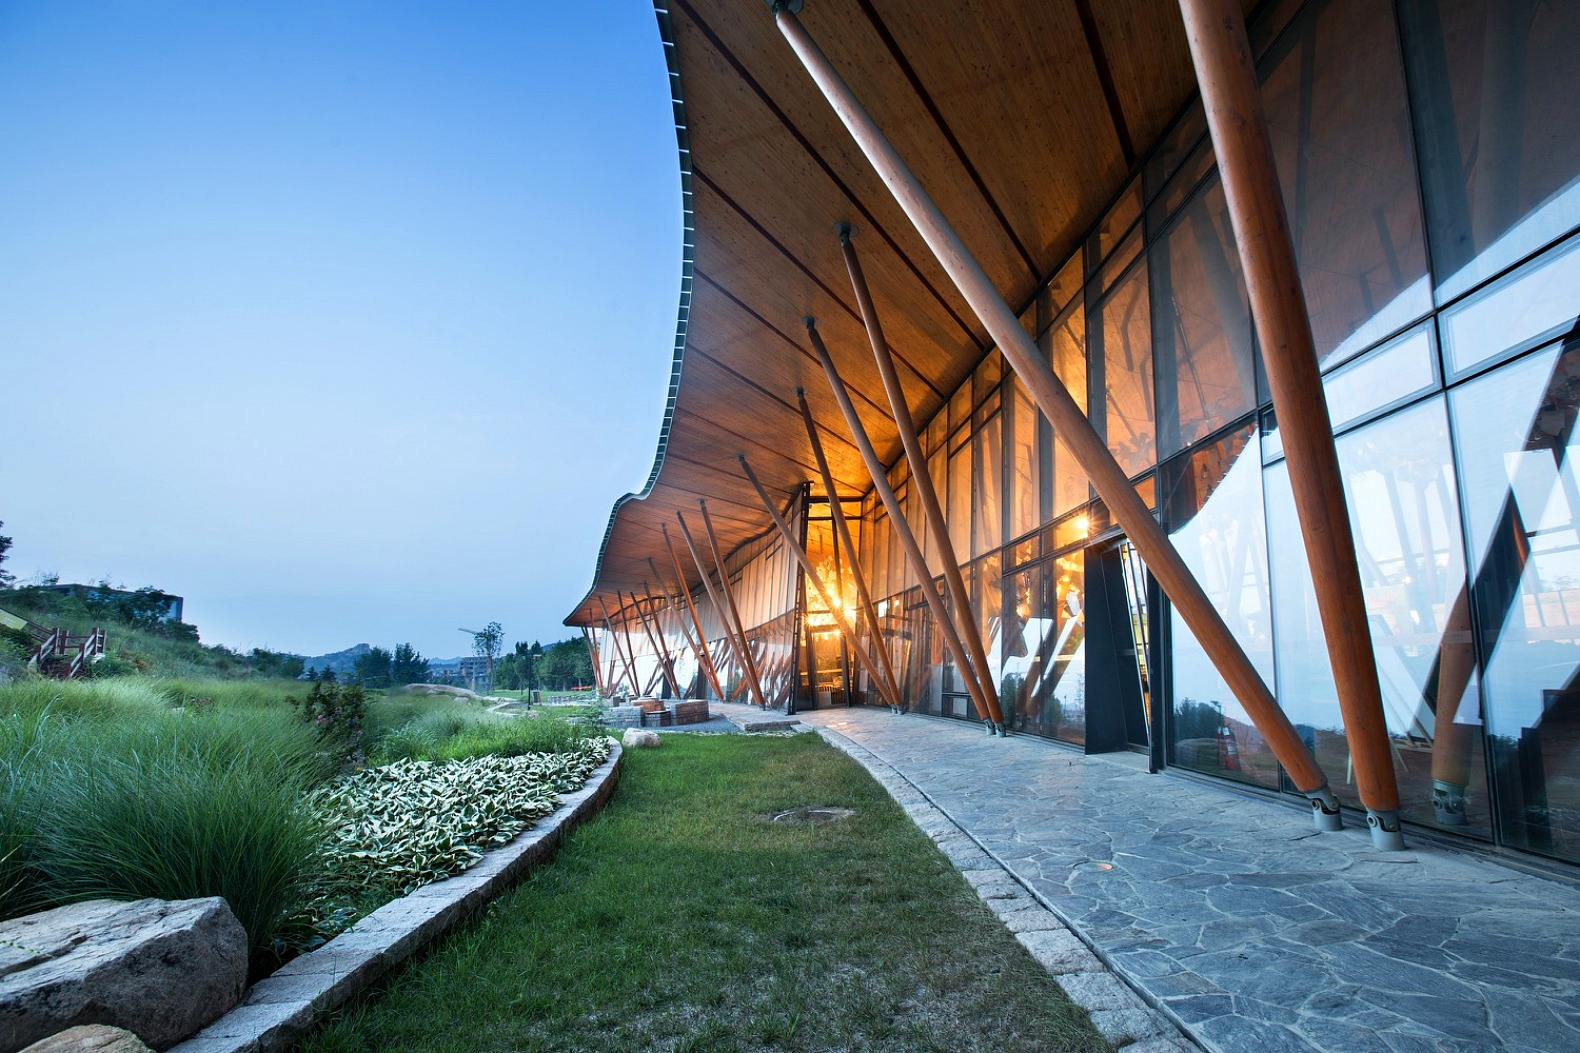 Vanke Tsing Tao Pearl Hill Visitor Center Blends Into The Landscape With A Rolling Green Roof